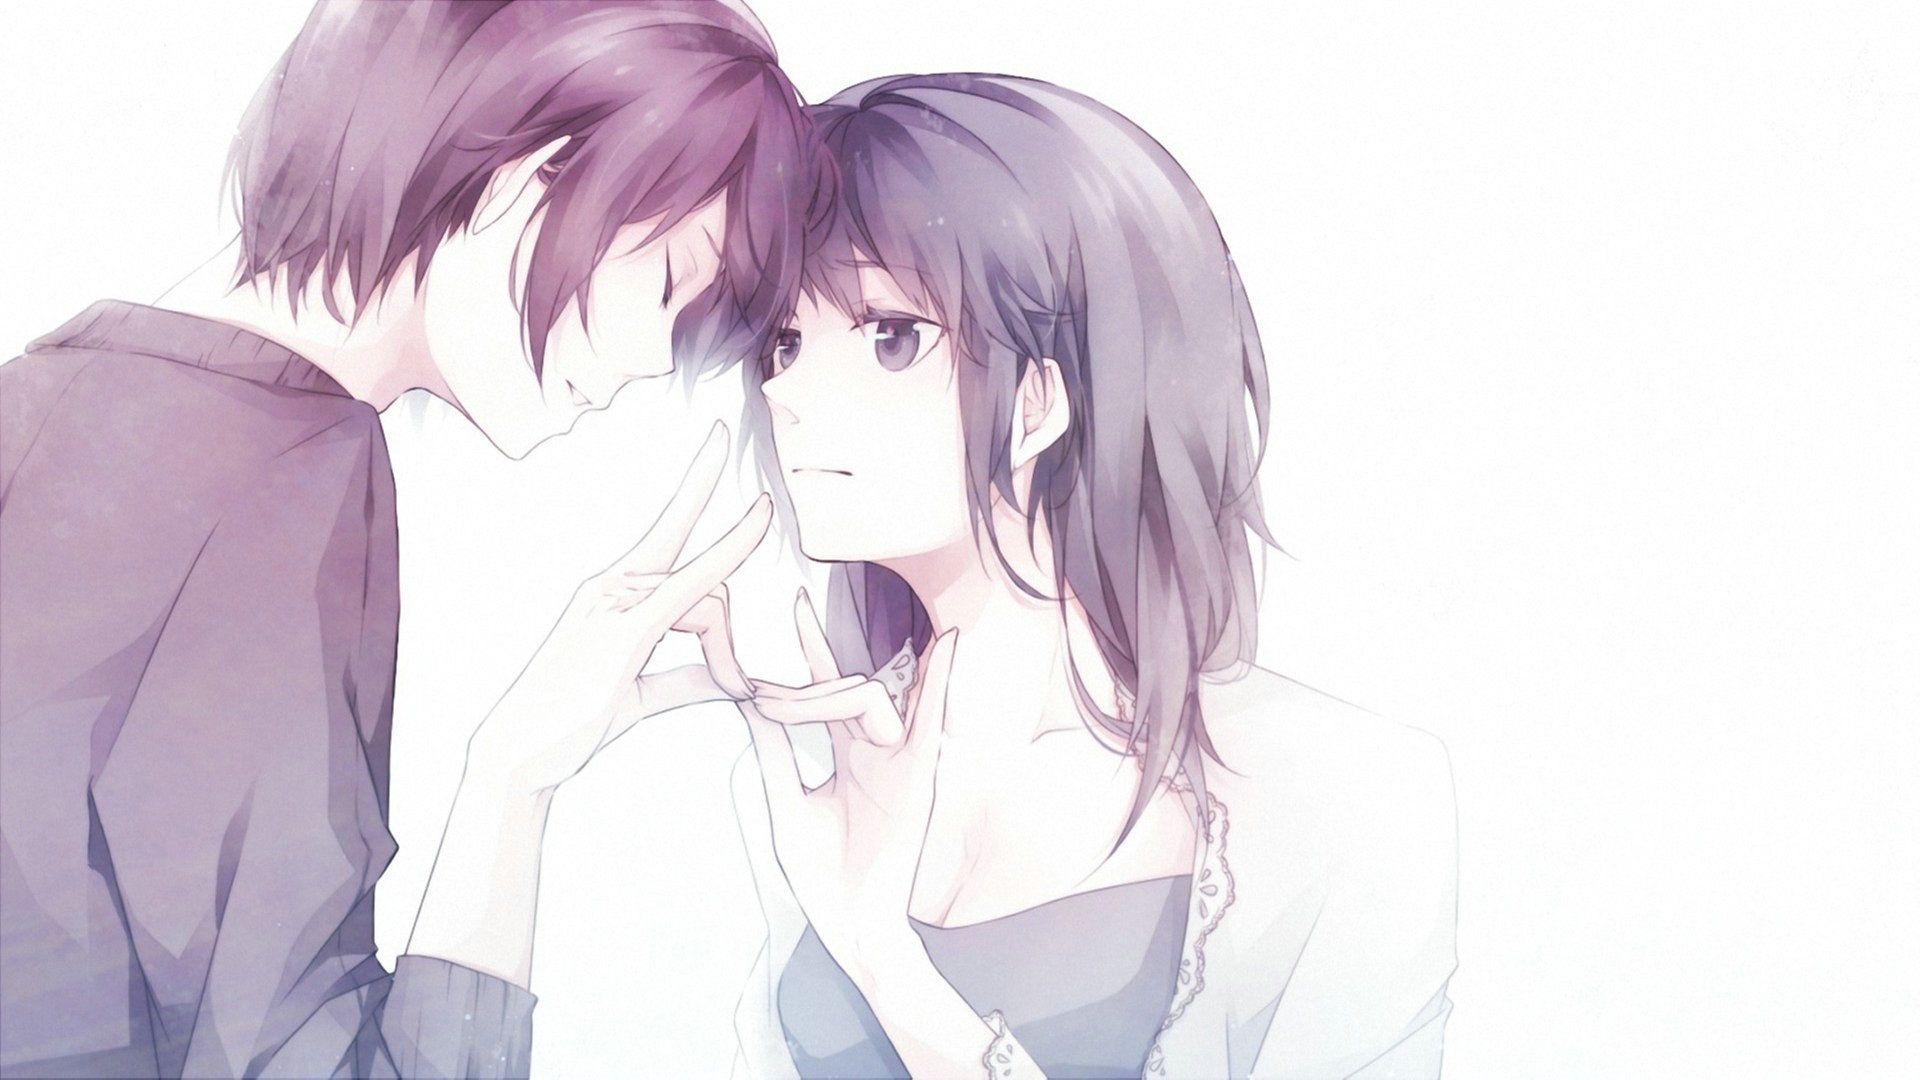 Anime Couple Hd Backgrounds Free Download Latest Anime Couple Hd